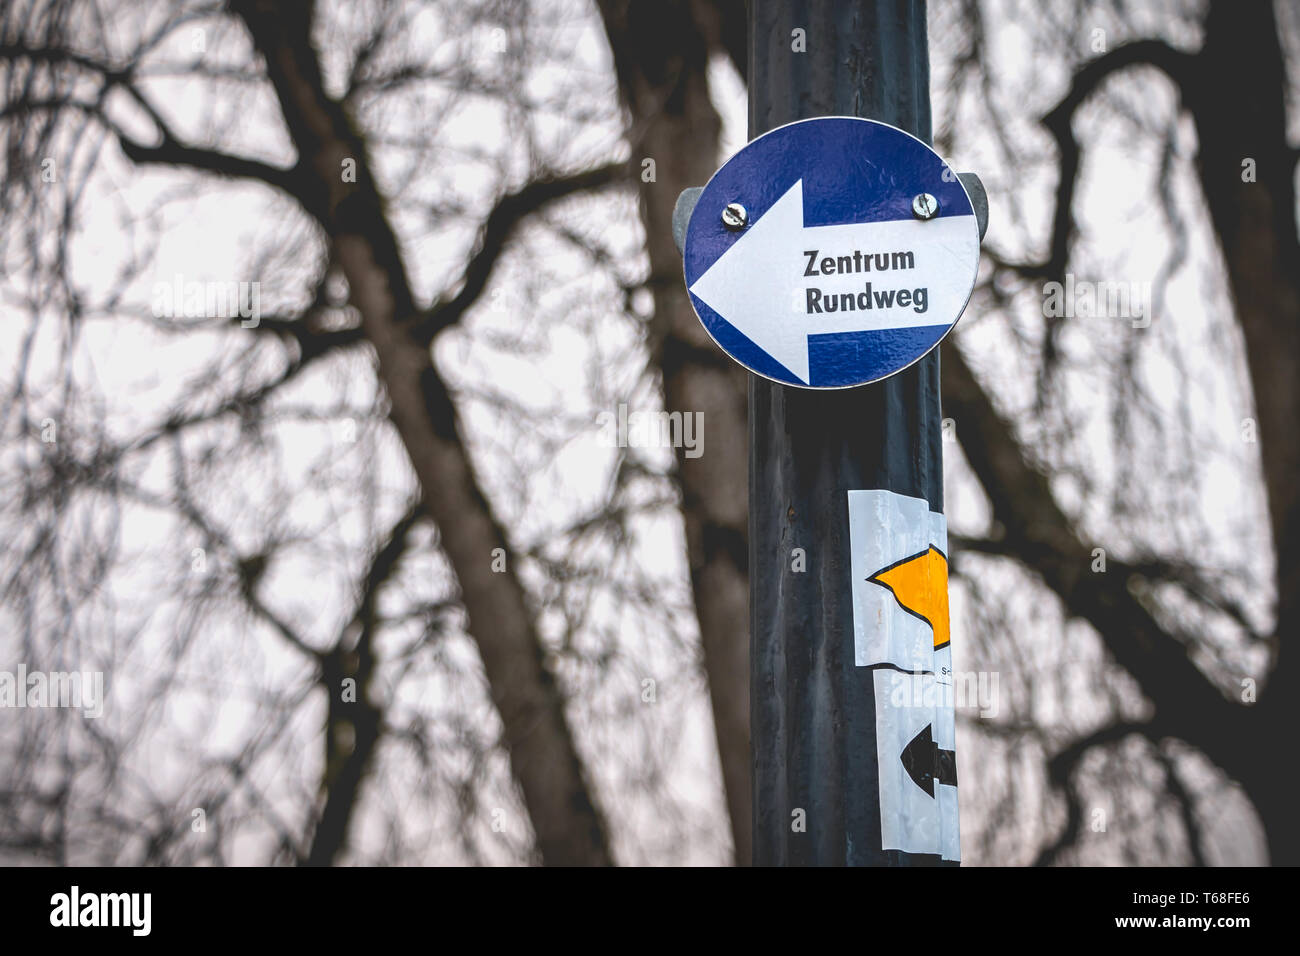 center roundabout in german on a small blue sign in a park Stock Photo